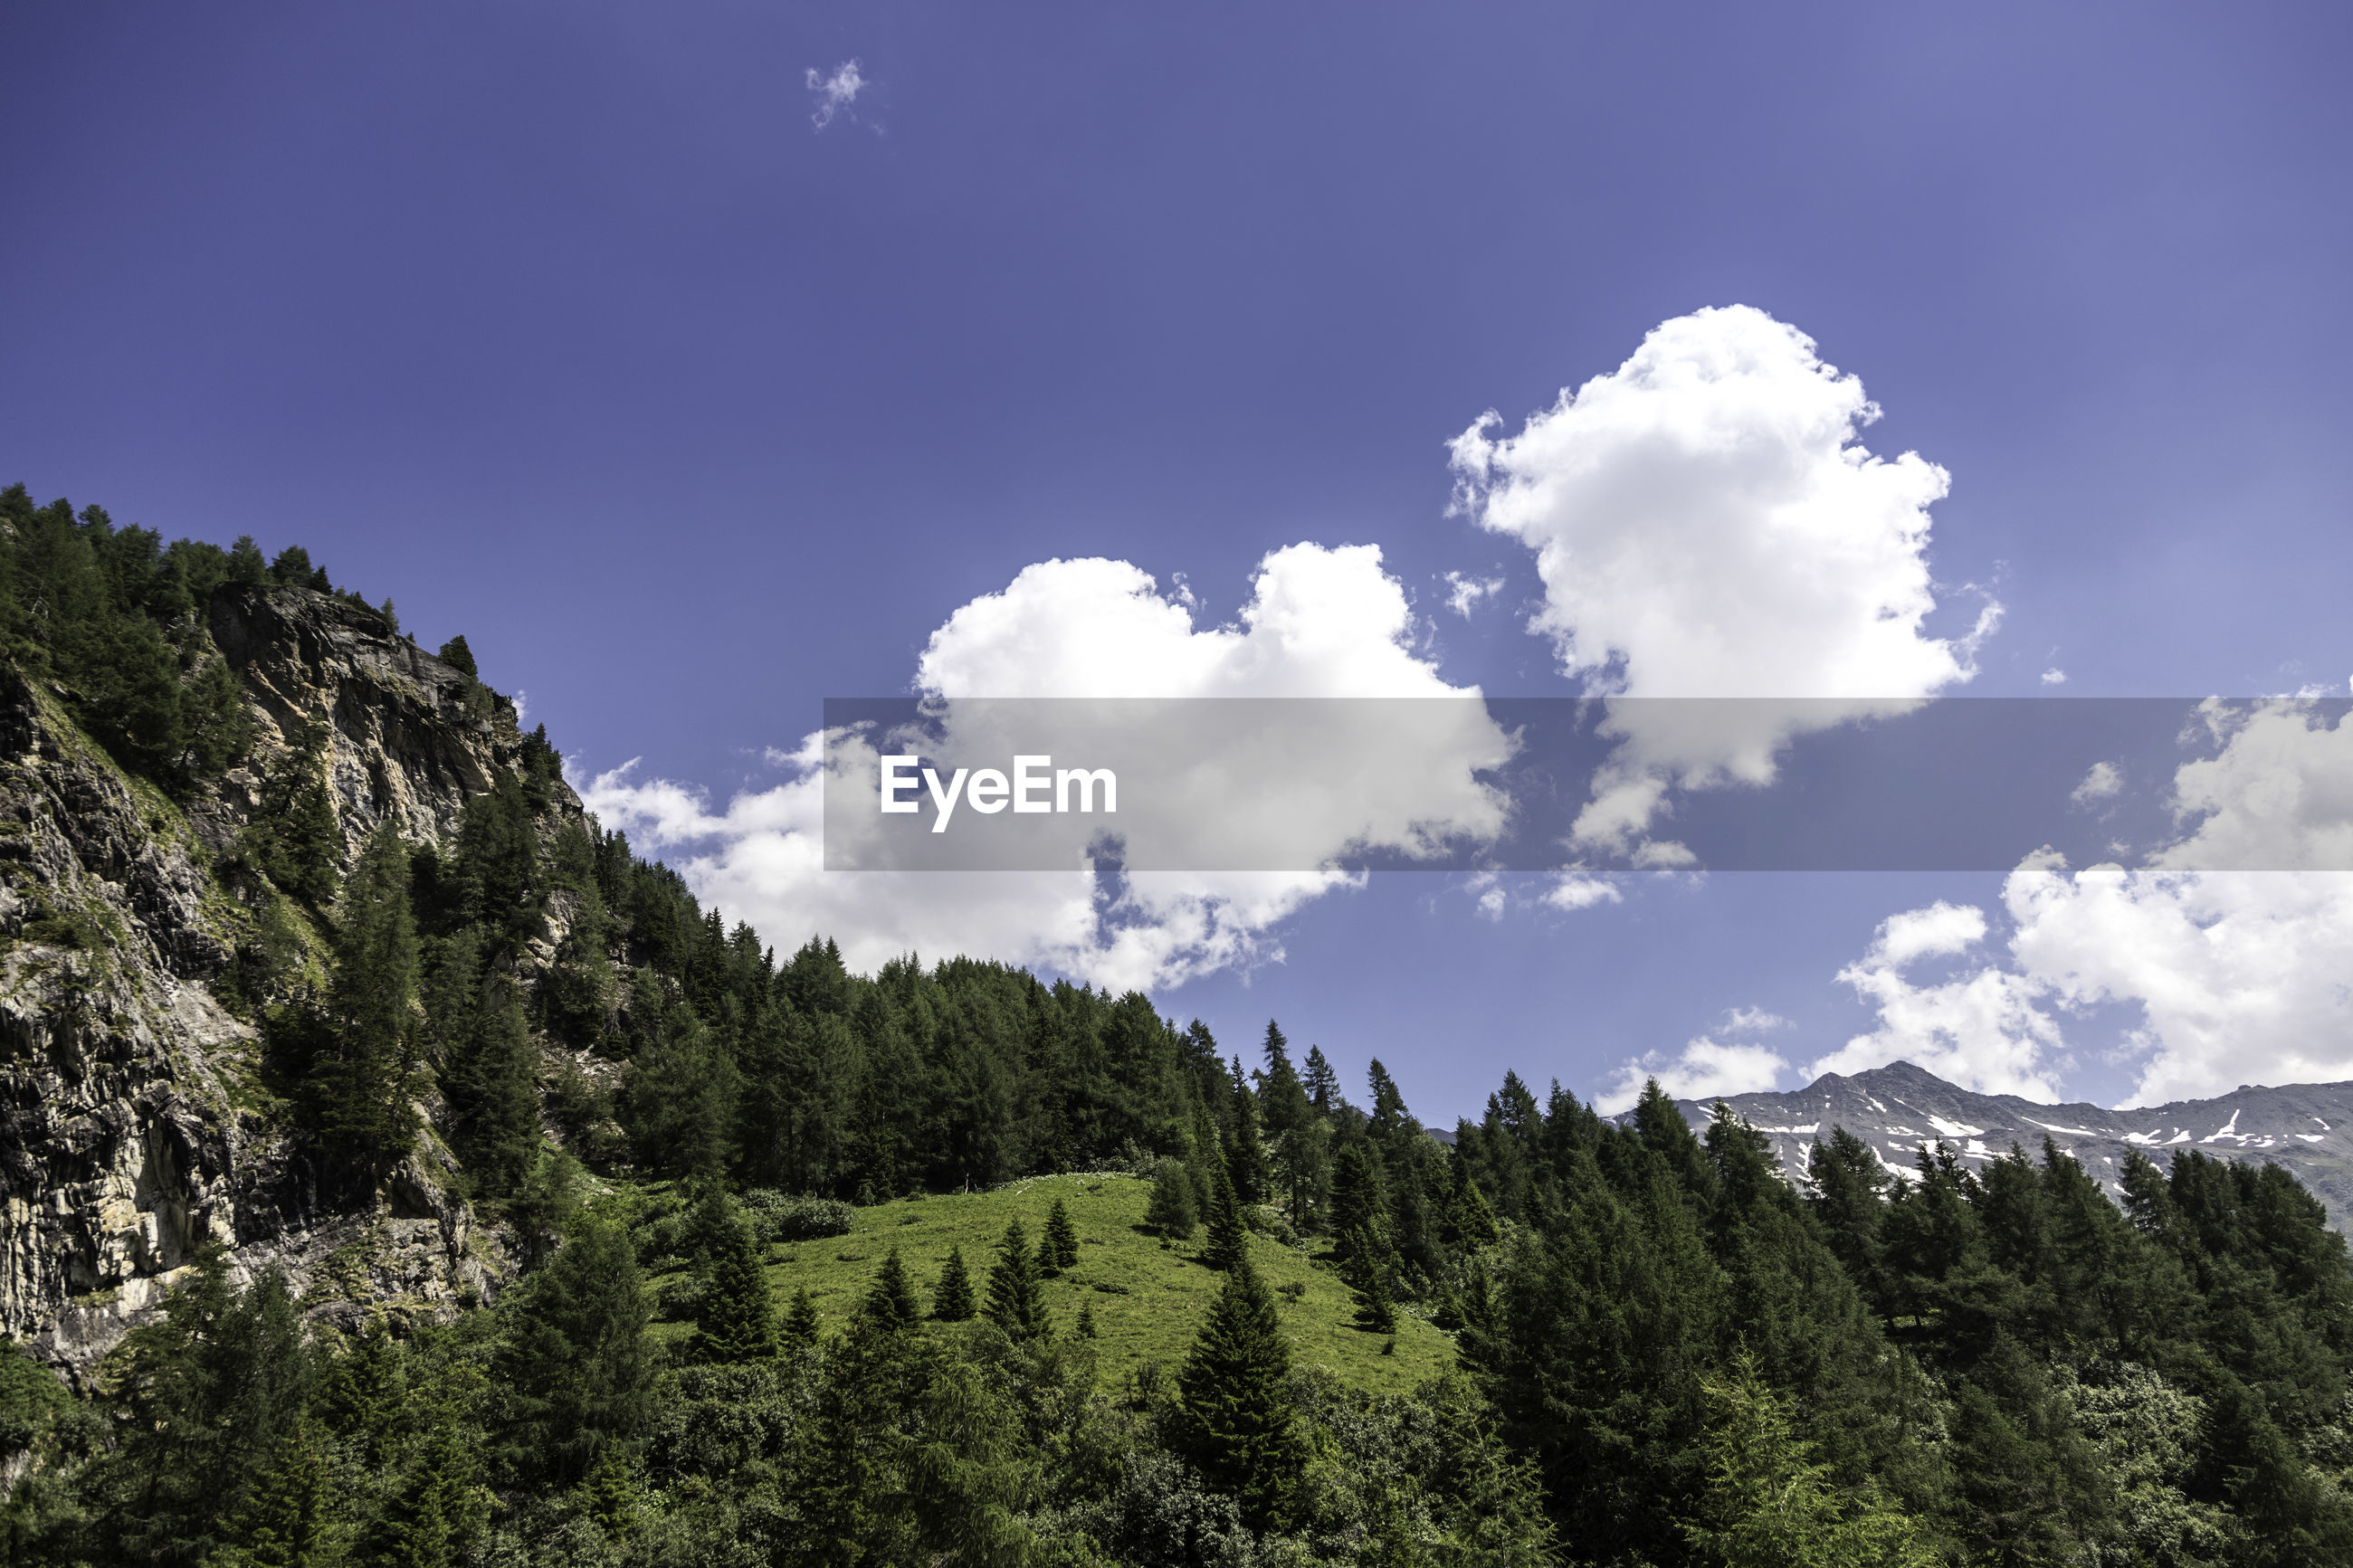 LOW ANGLE VIEW OF TREES AND MOUNTAIN AGAINST SKY